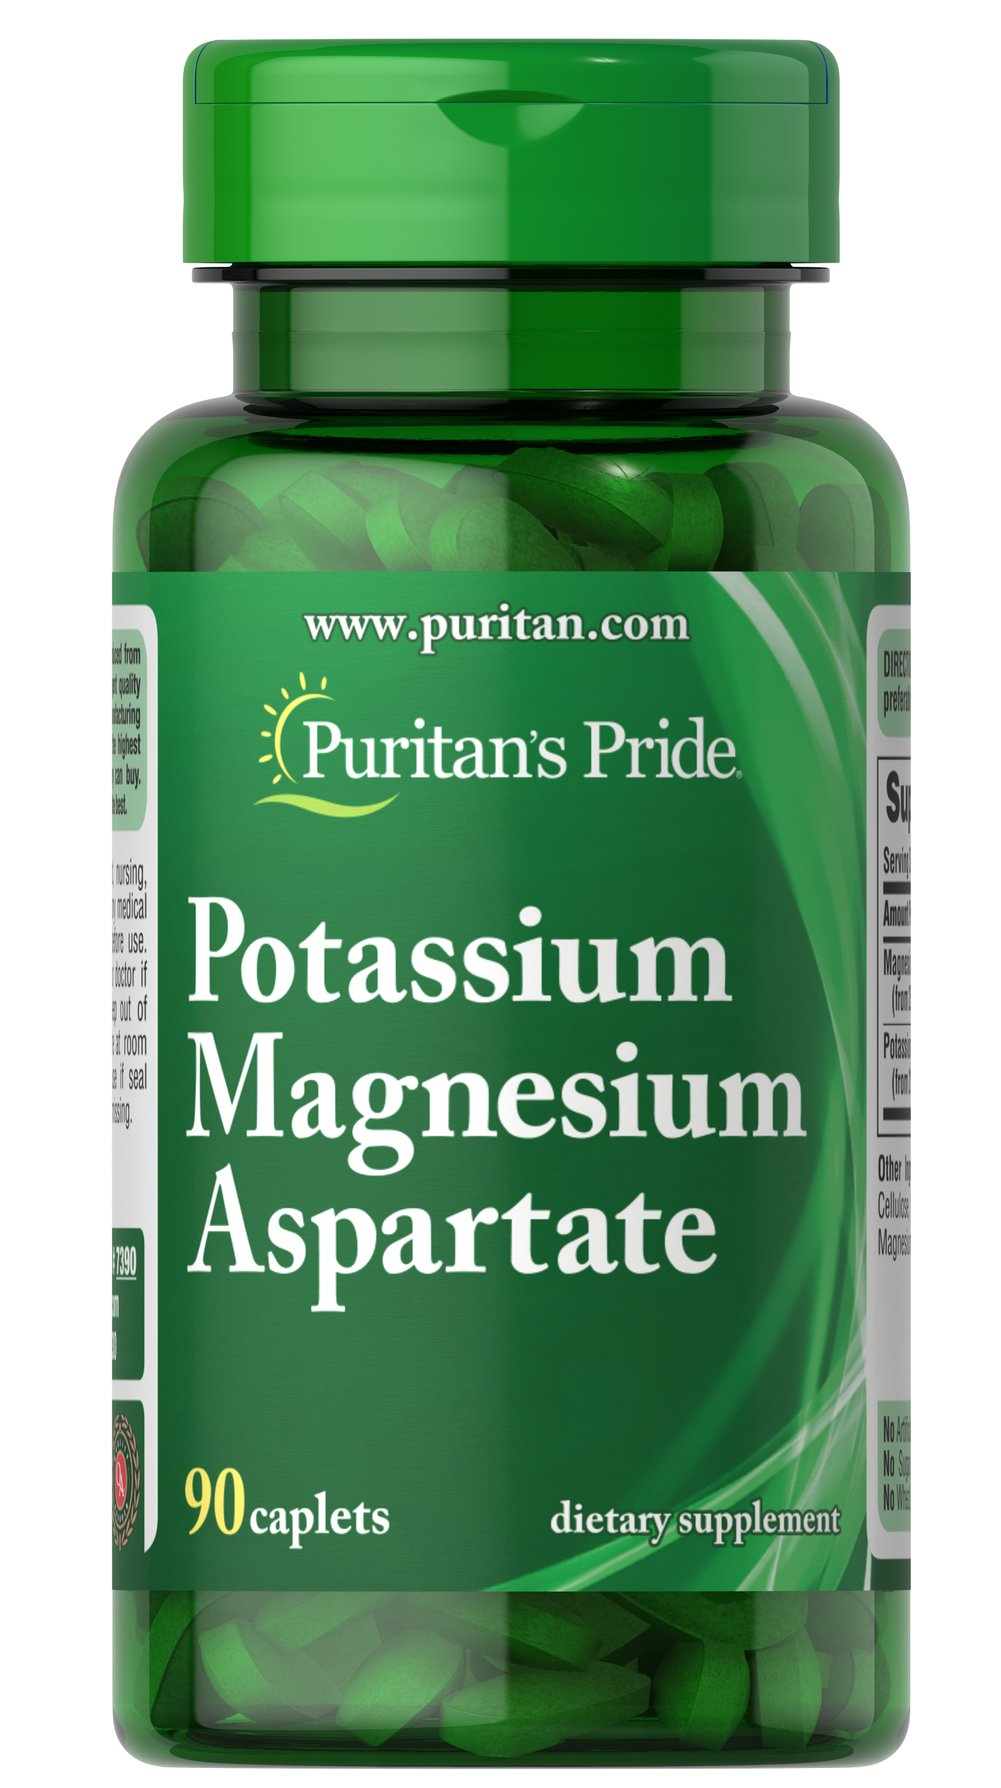 Potassium Magnesium Aspartate Thumbnail Alternate Bottle View